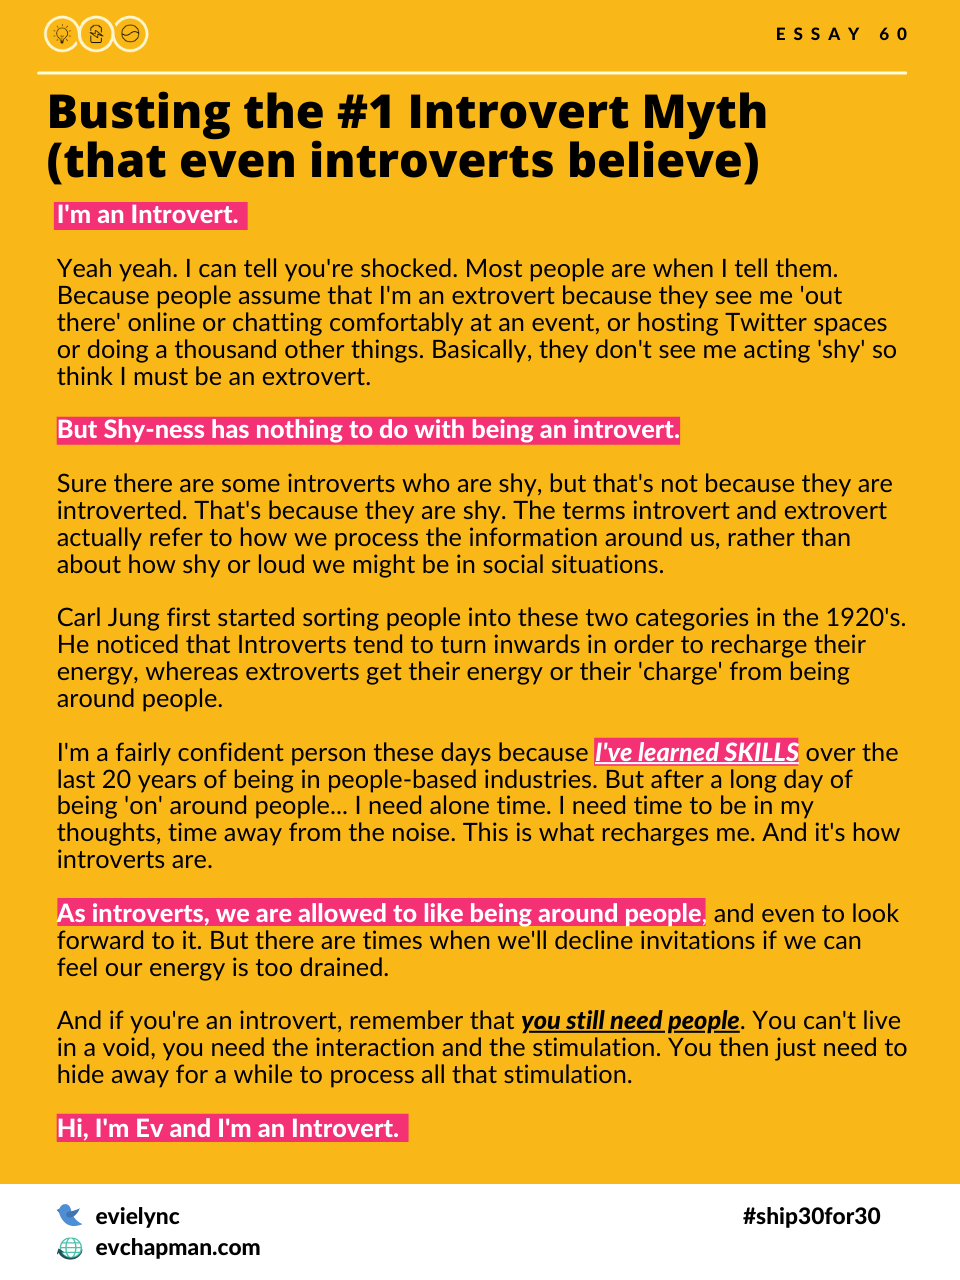 Busting the #1 Introvert Myth (that even introverts believe)